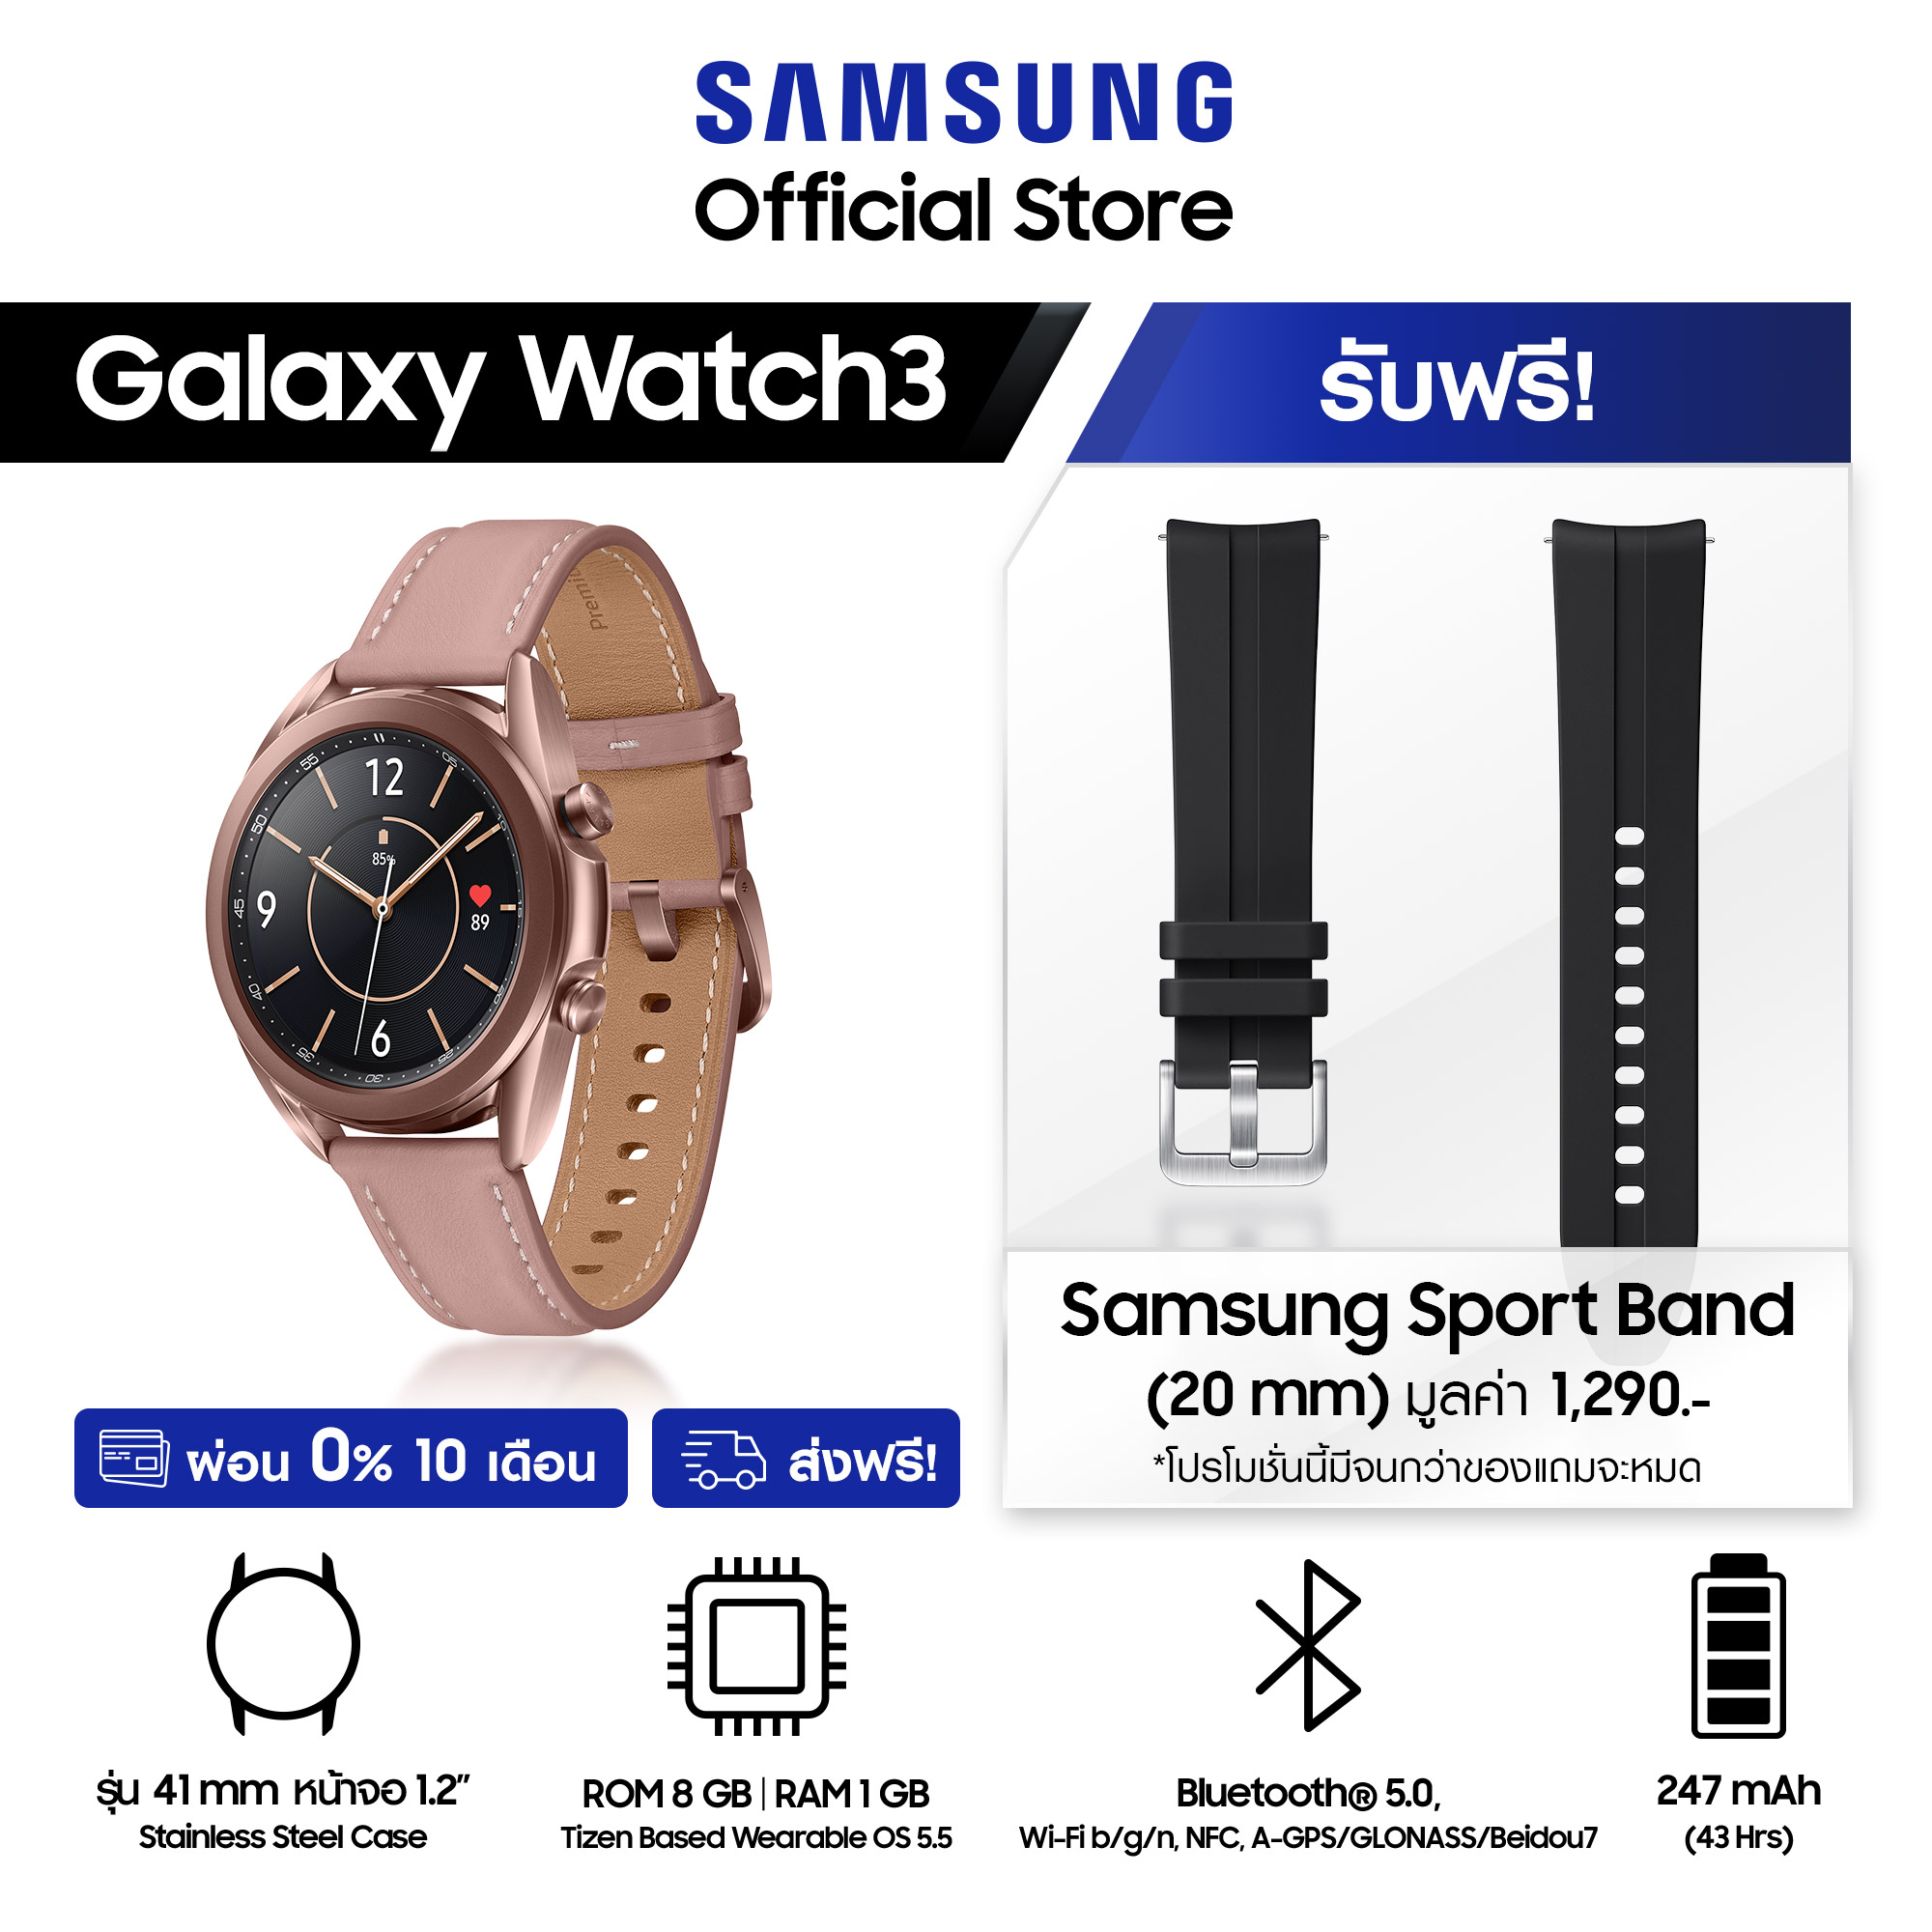 Samsung Galaxy Watch3 Bluetooth (41/45mm) - รับฟรี Samsung Sport Band - Galaxy Watch 3 สีดำ มูลค่า 1,290 บาท